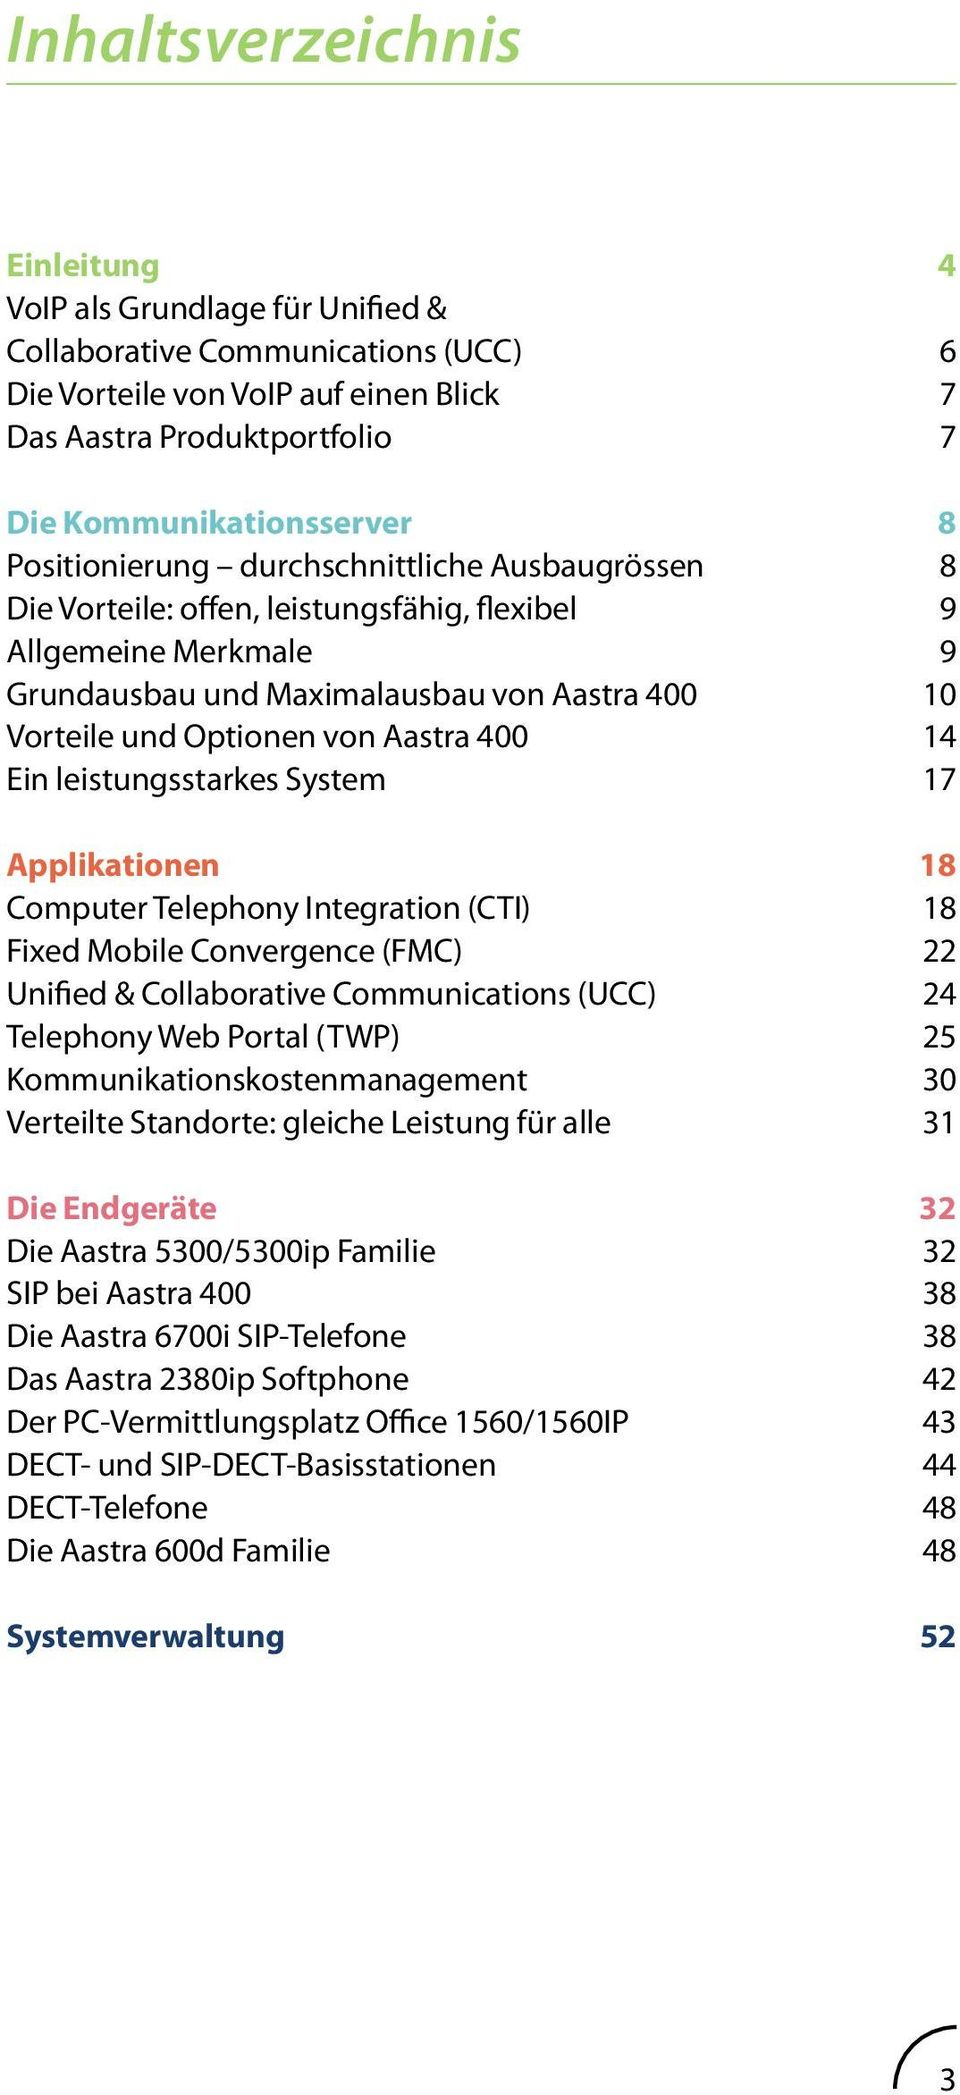 400 14 Ein leistungsstarkes System 17 Applikationen 18 Computer Telephony Integration (CTI) 18 Fixed Mobile Convergence (FMC) 22 Unified & Collaborative Communications (UCC) 24 Telephony Web Portal